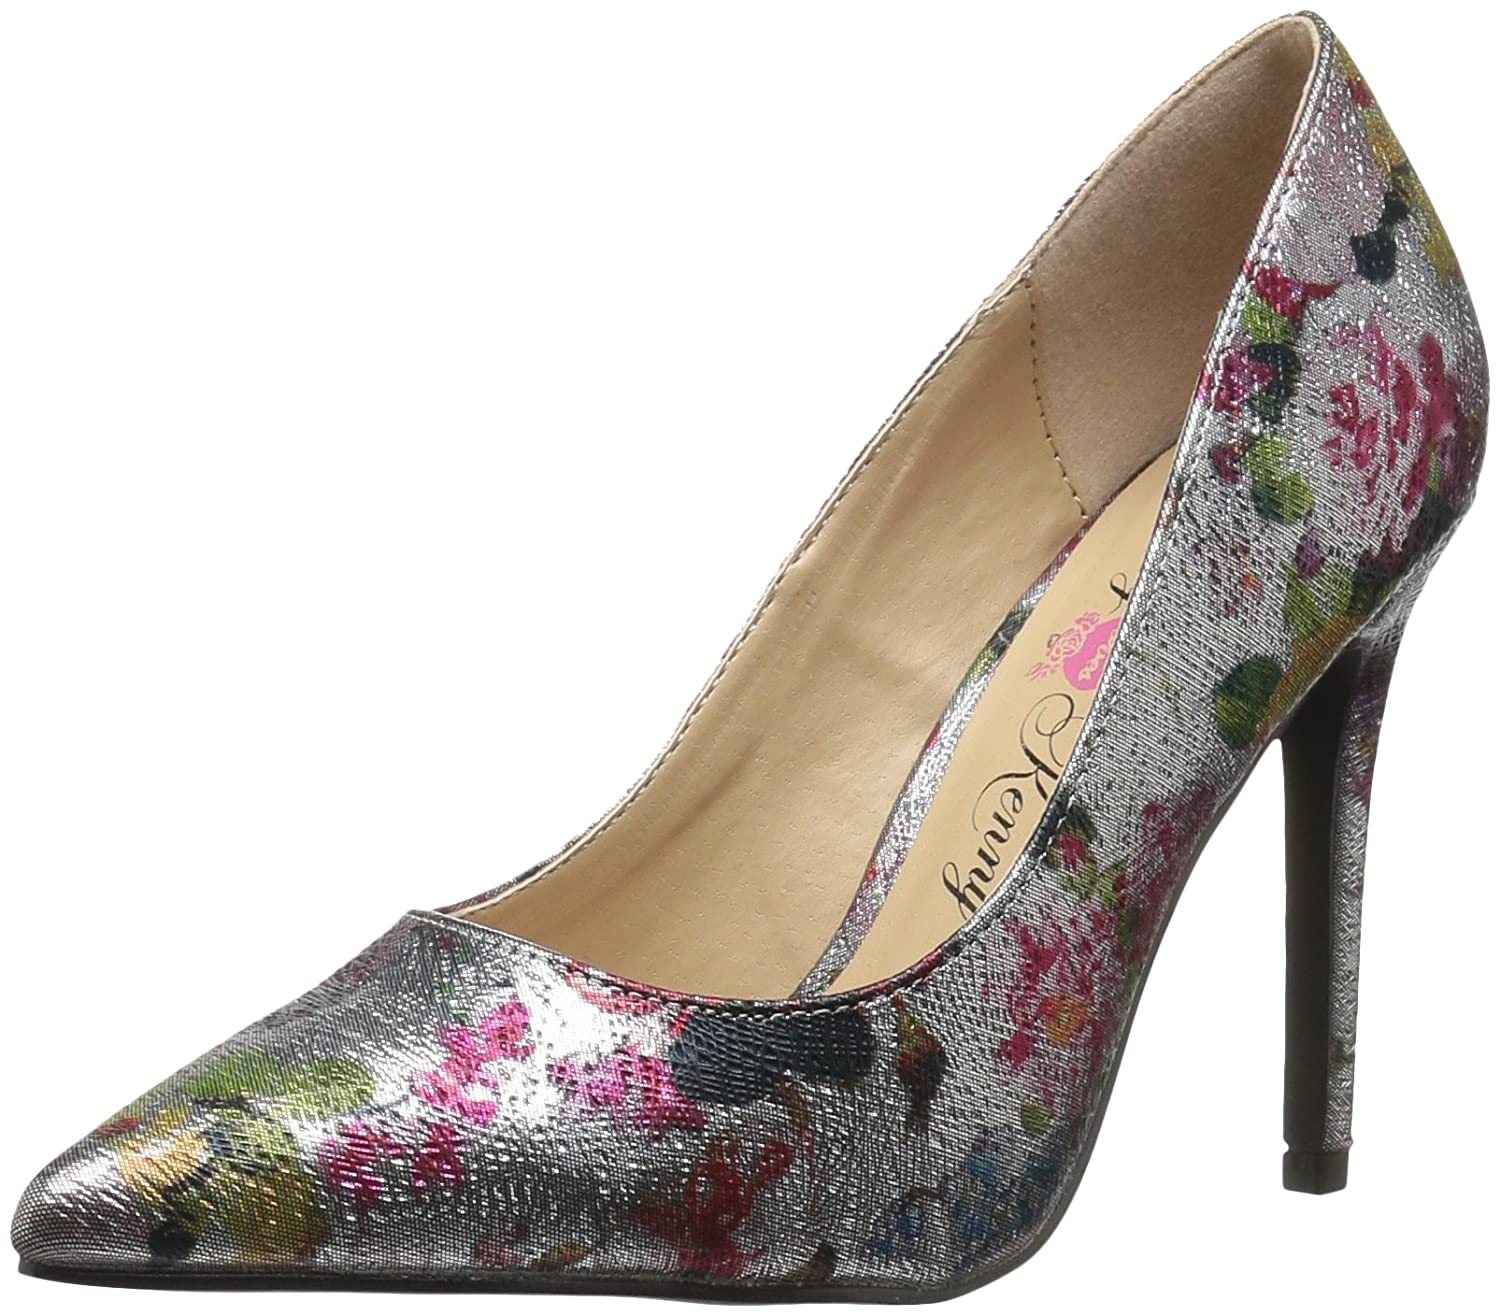 Penny Loves Kenny Women's Opus Metf Pump B073VT51FW 10 B(M) US|Pewter Metallic Floral